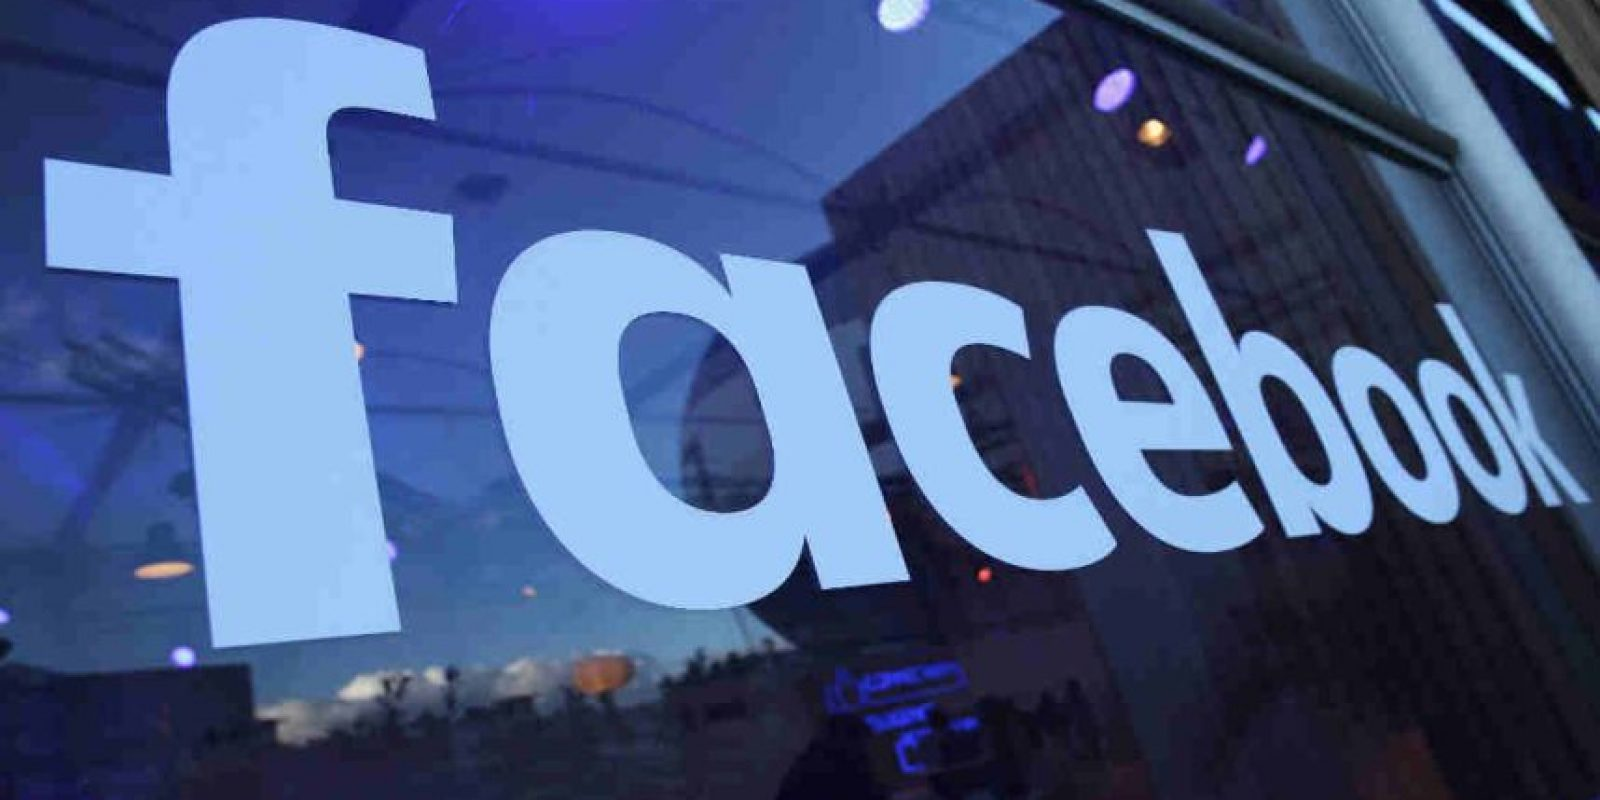 Es impulsado gracias a la inteligencia artificial de Facebook. Foto: Getty Images